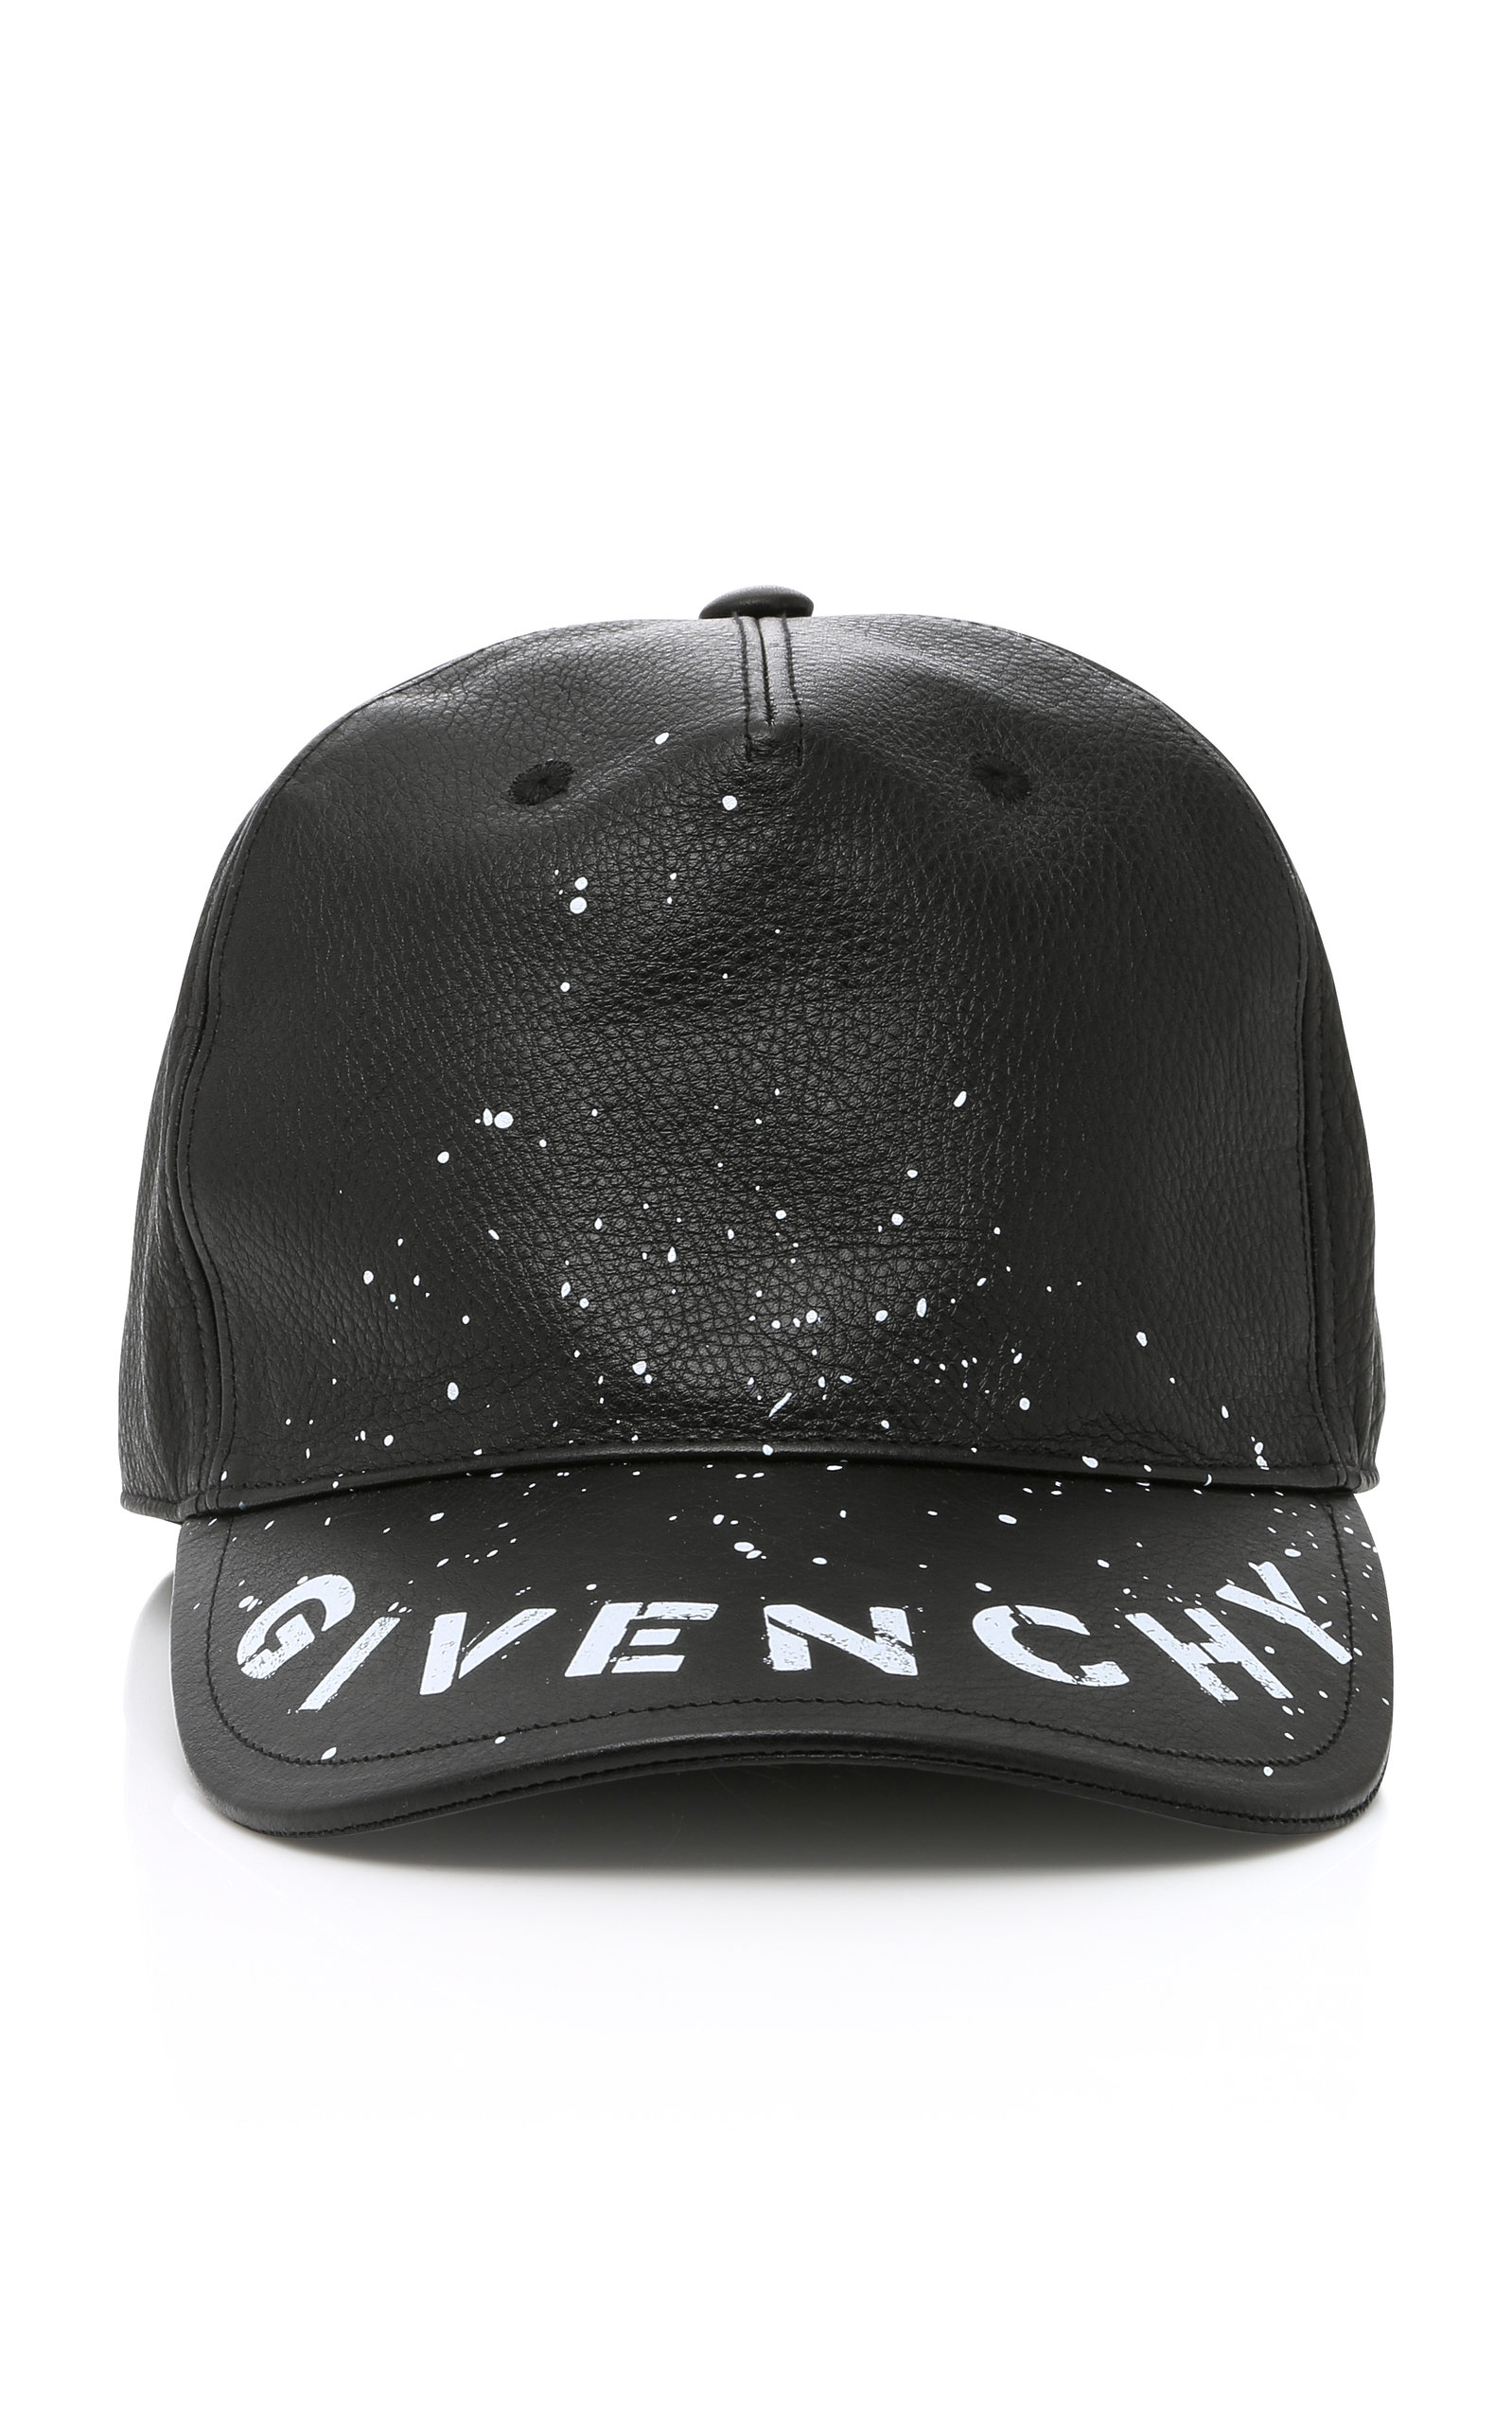 9297ec7b55f7ff Givenchy Logo-Print Leather Baseball Cap - Black - One Siz | ModeSens